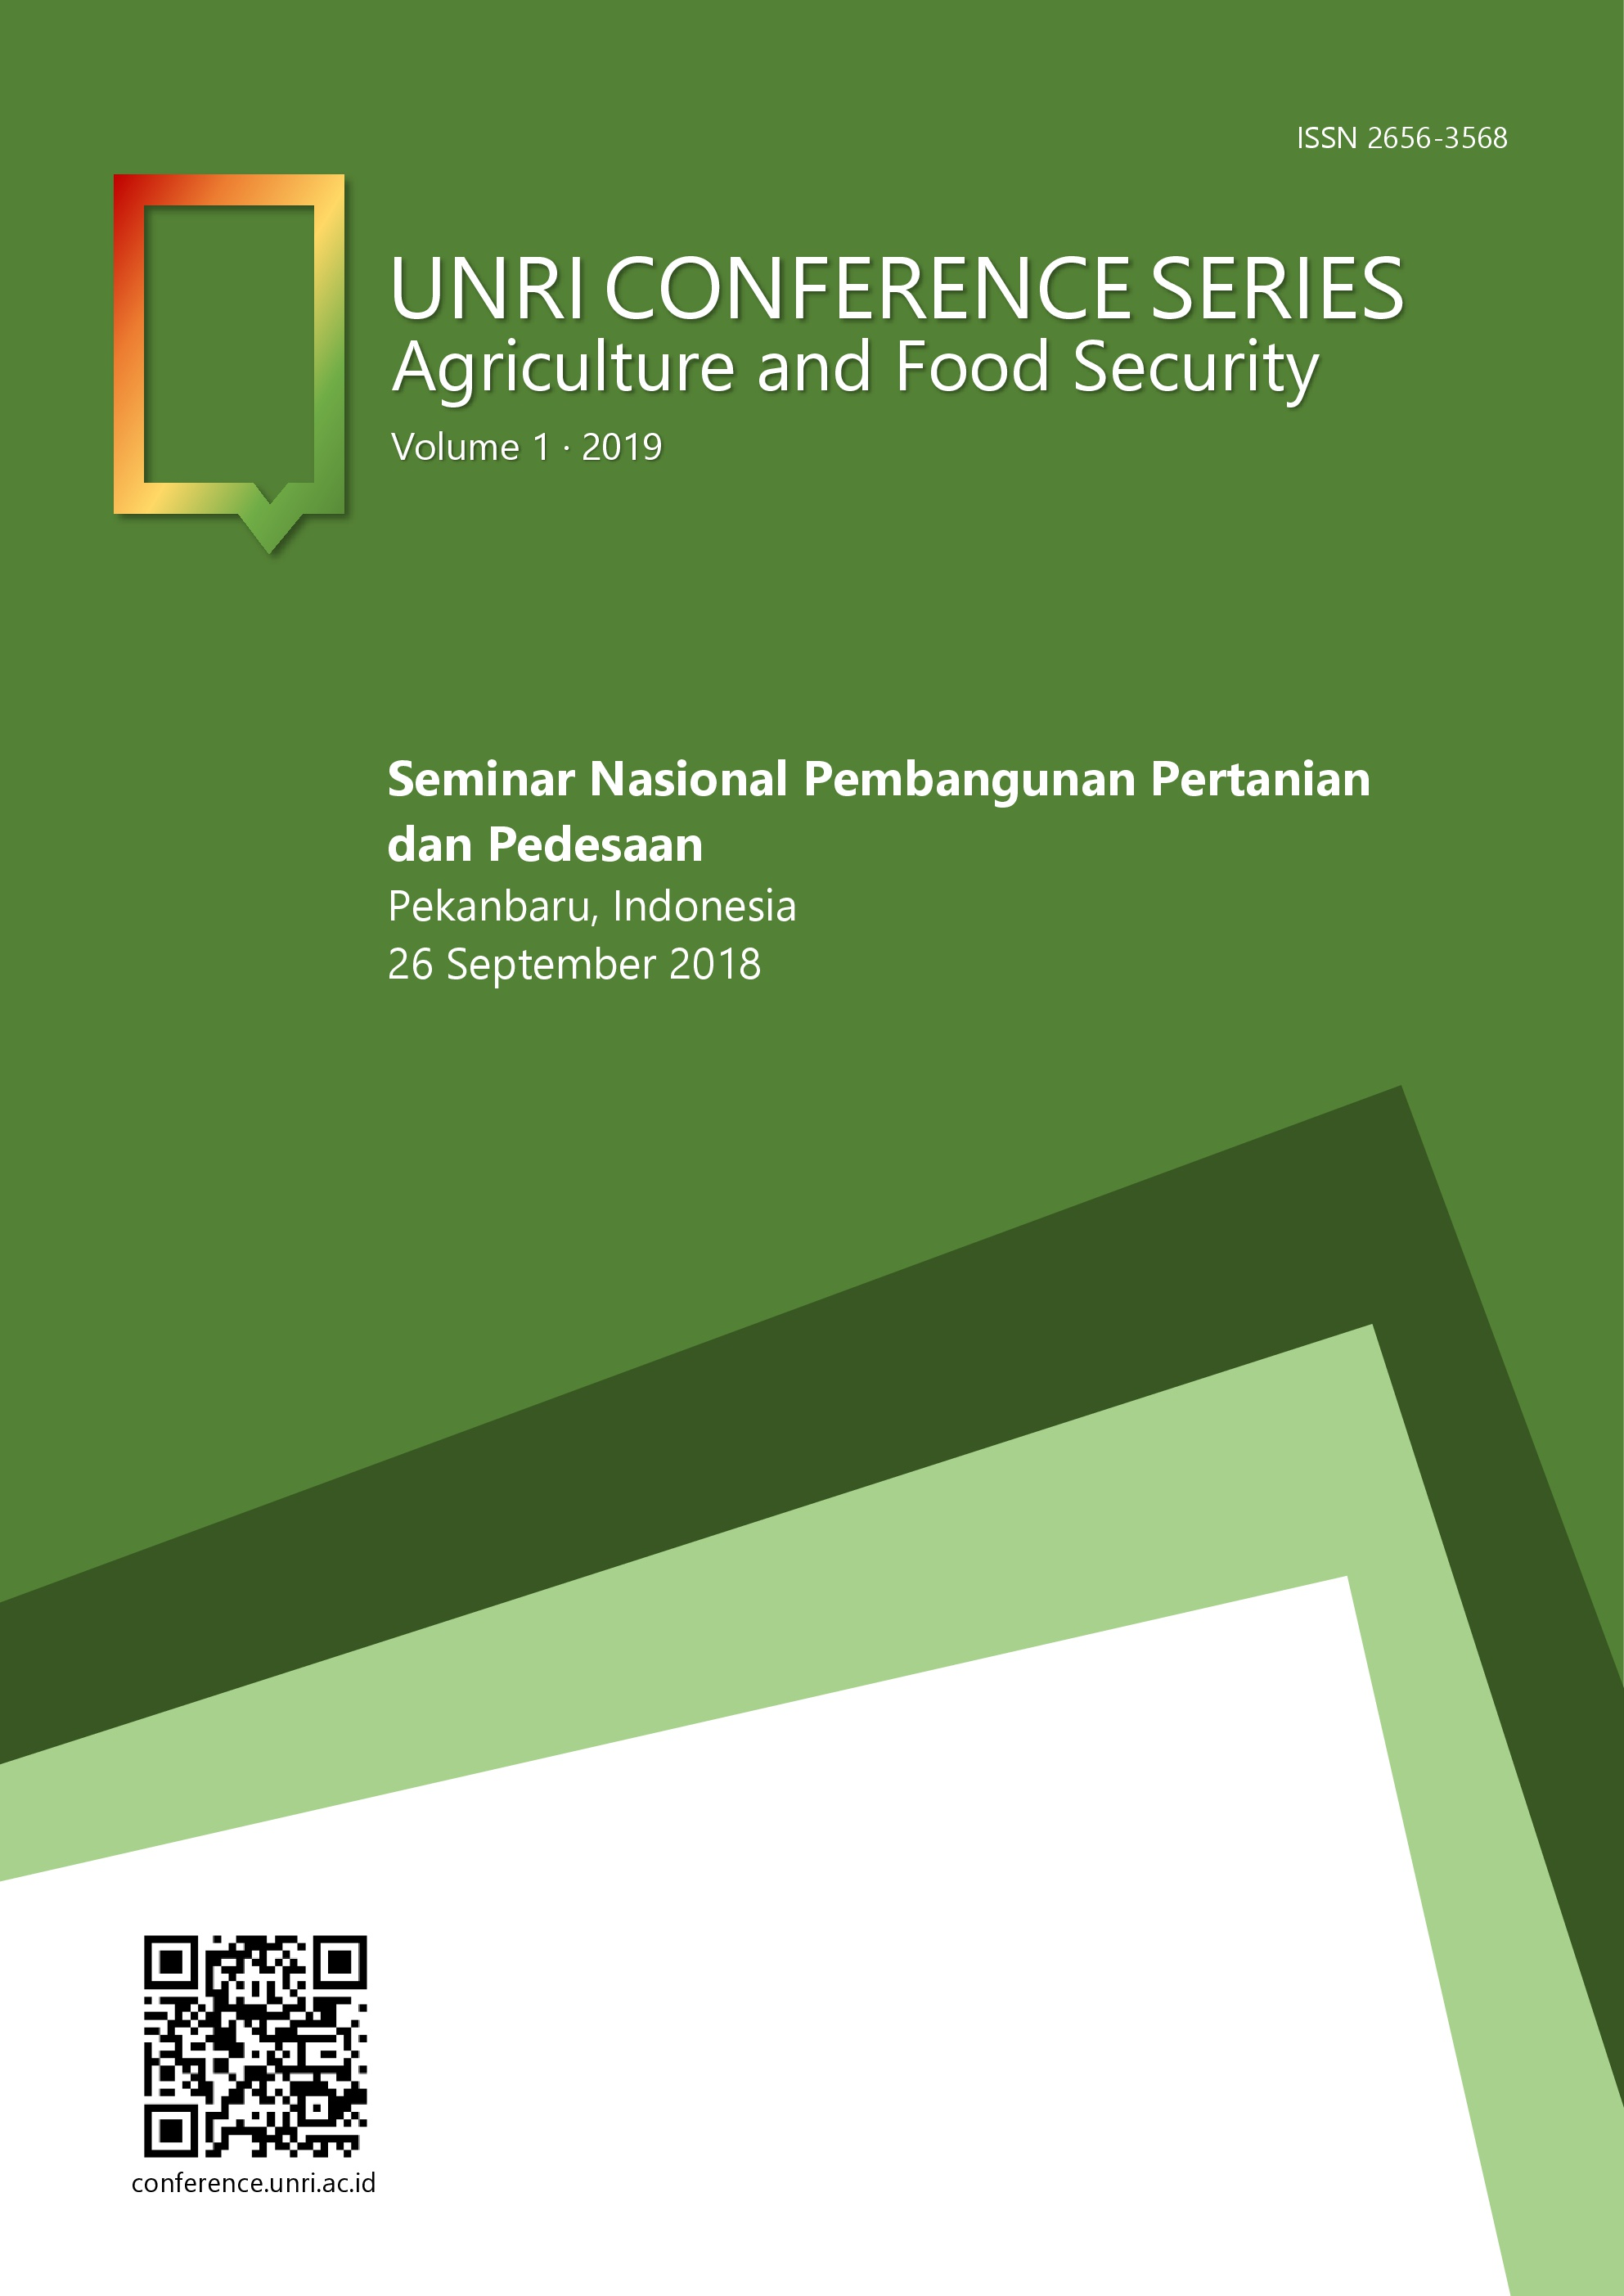 Unri Conference Series: Agriculture and Food Security. Volume 1